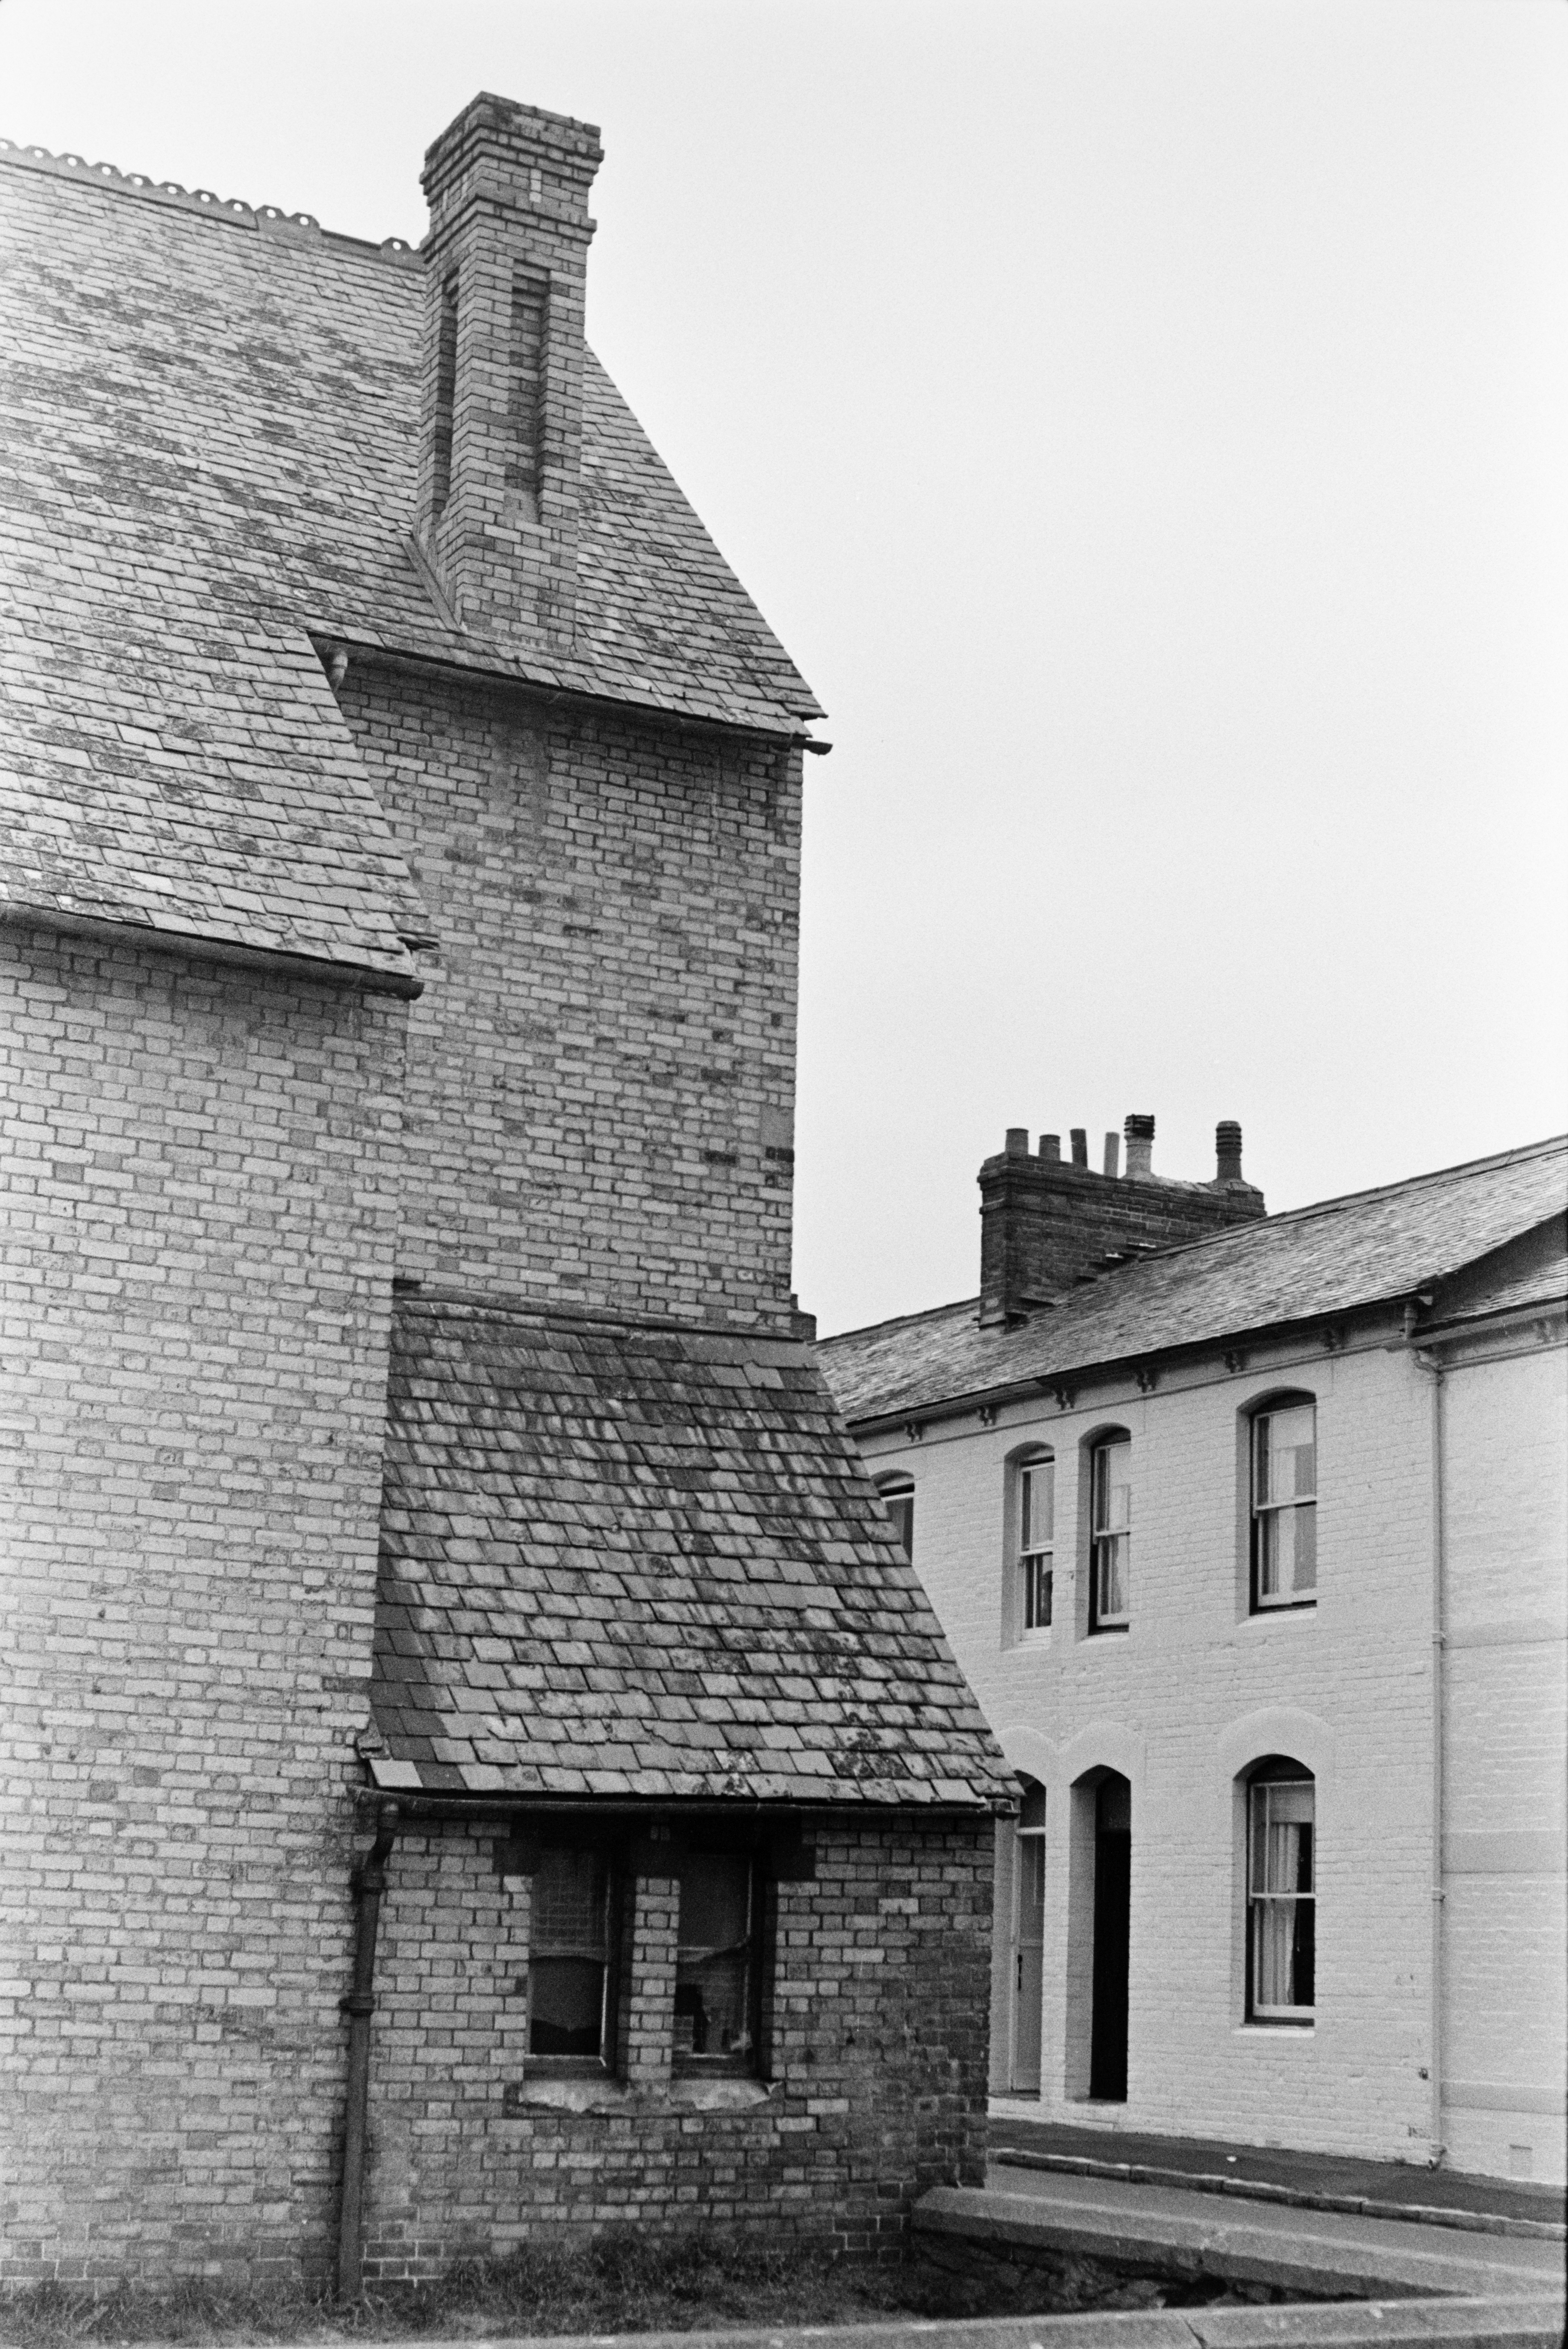 A brick house with a brick chimney and slate roof in Barnstaple.